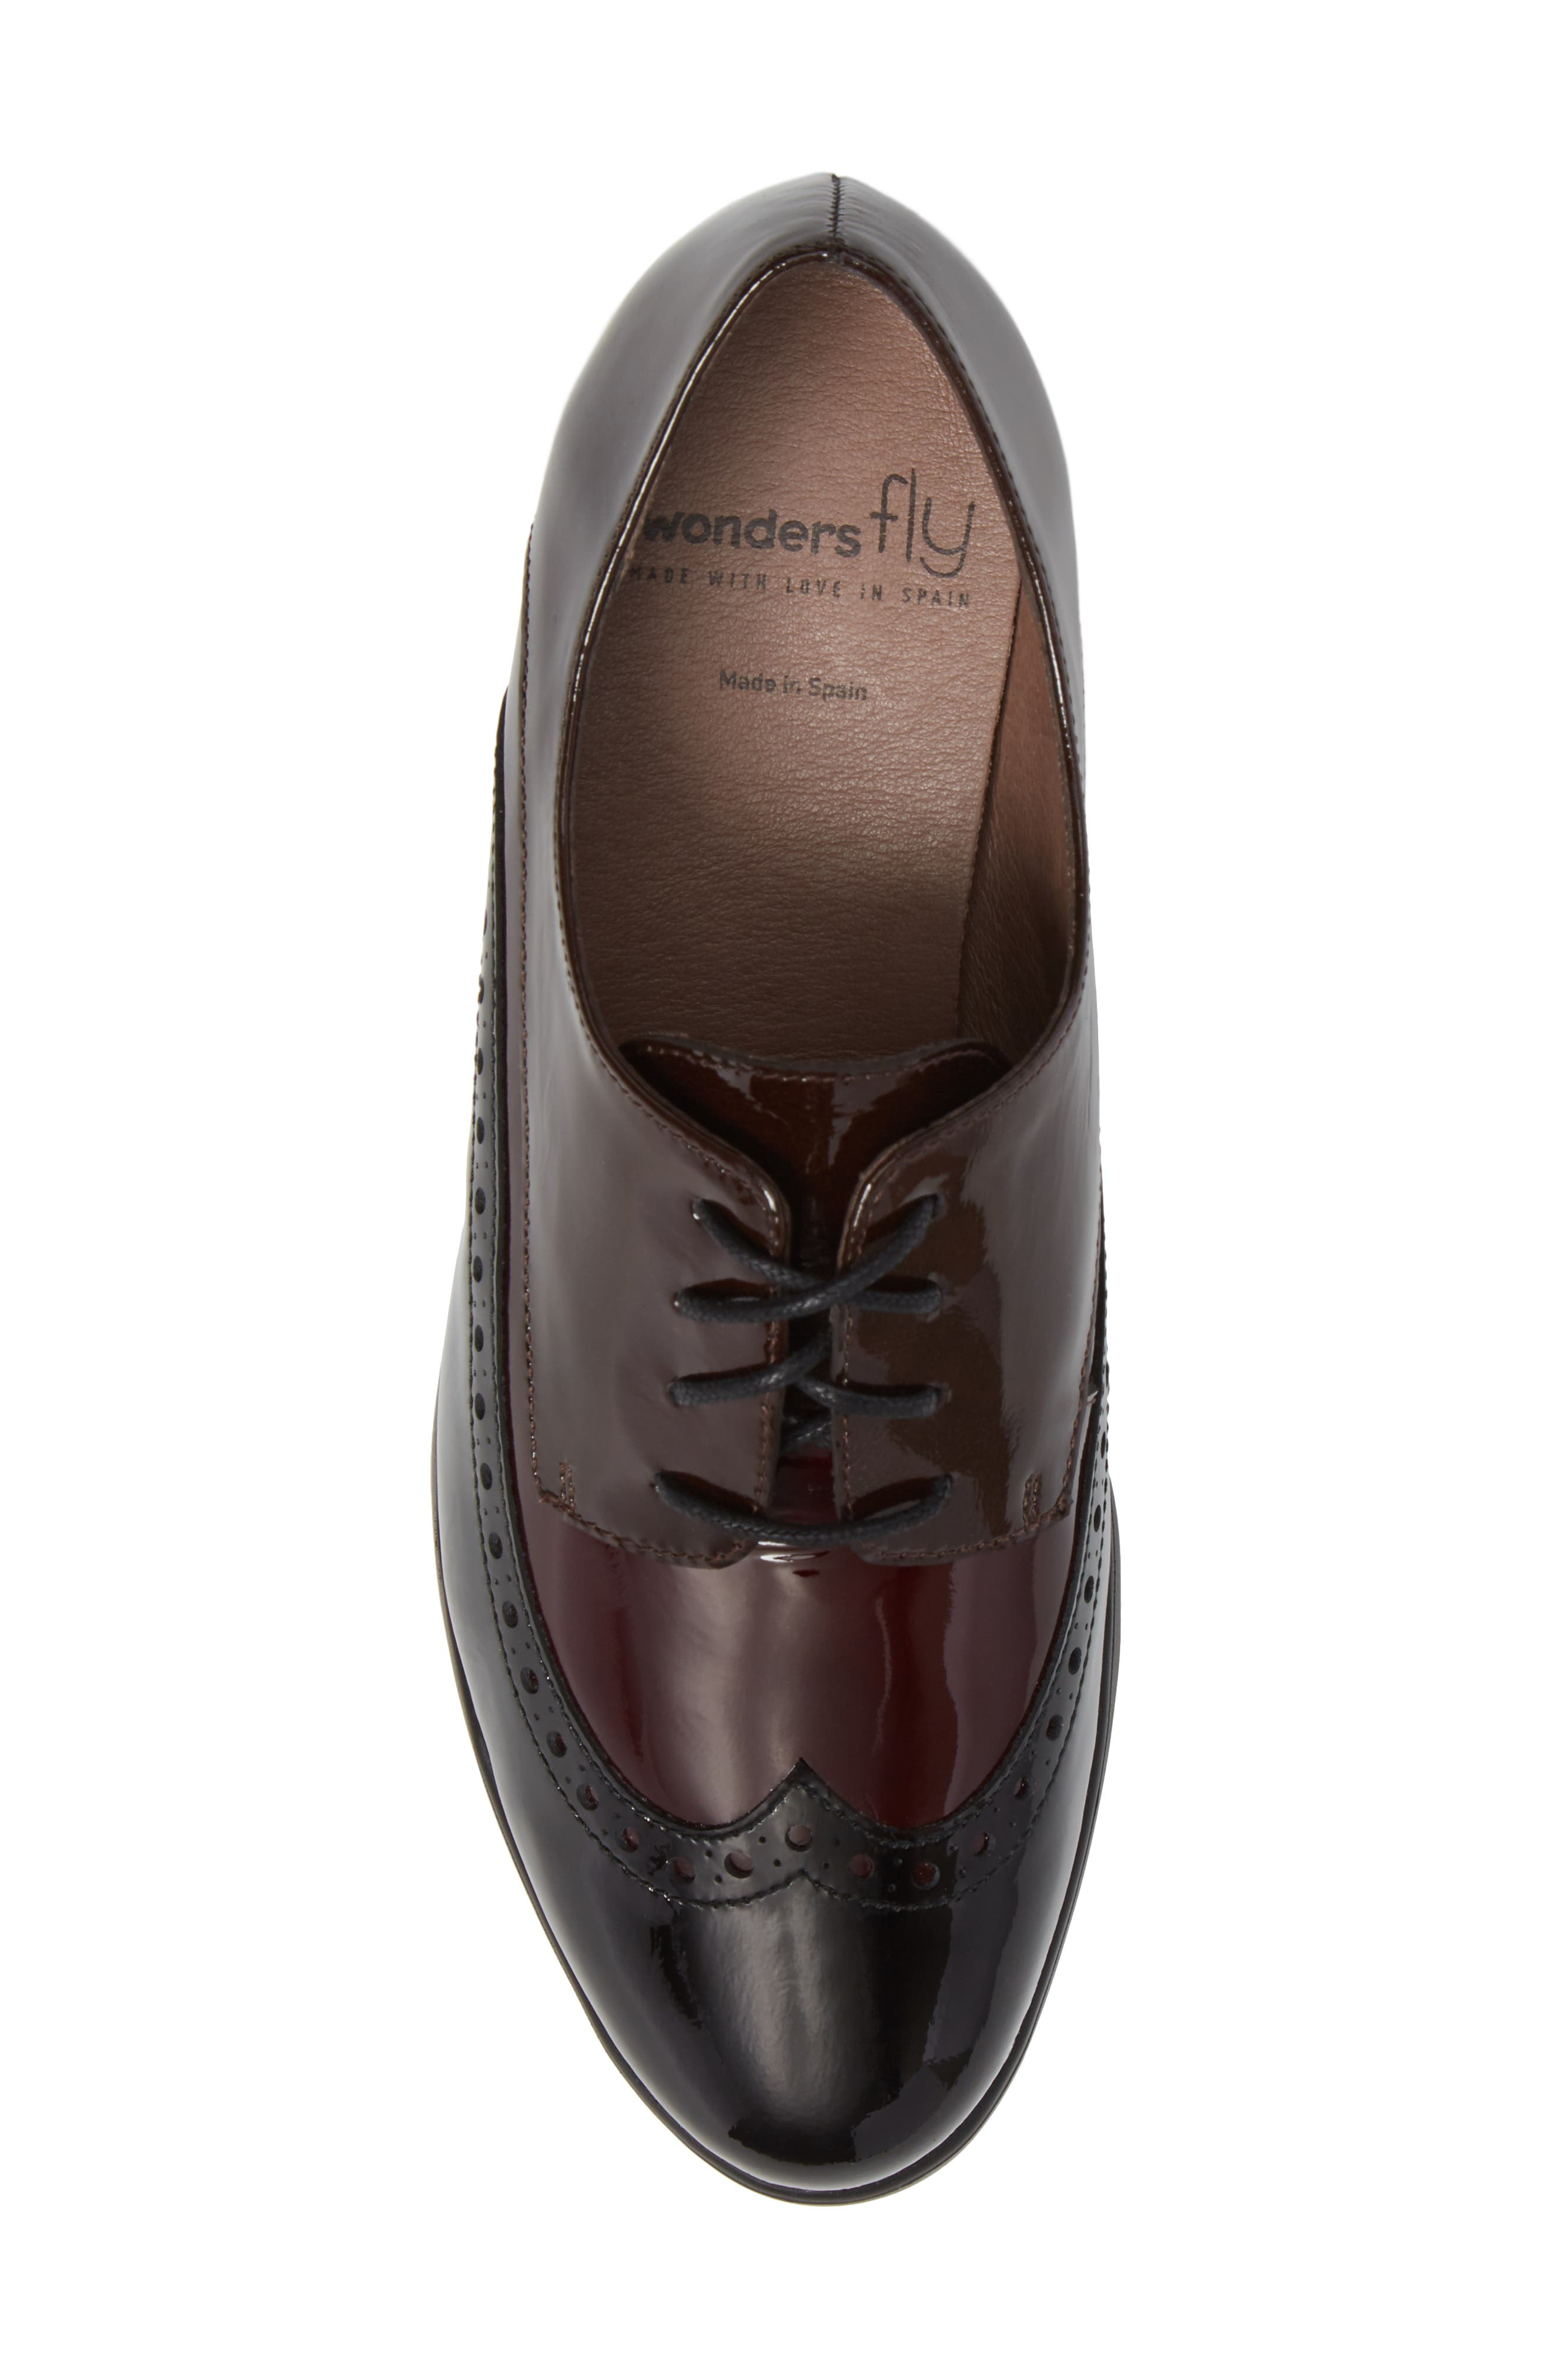 Wedge Wingtip Derby,                             Alternate thumbnail 5, color,                             Black/ Bordo Patent Leather